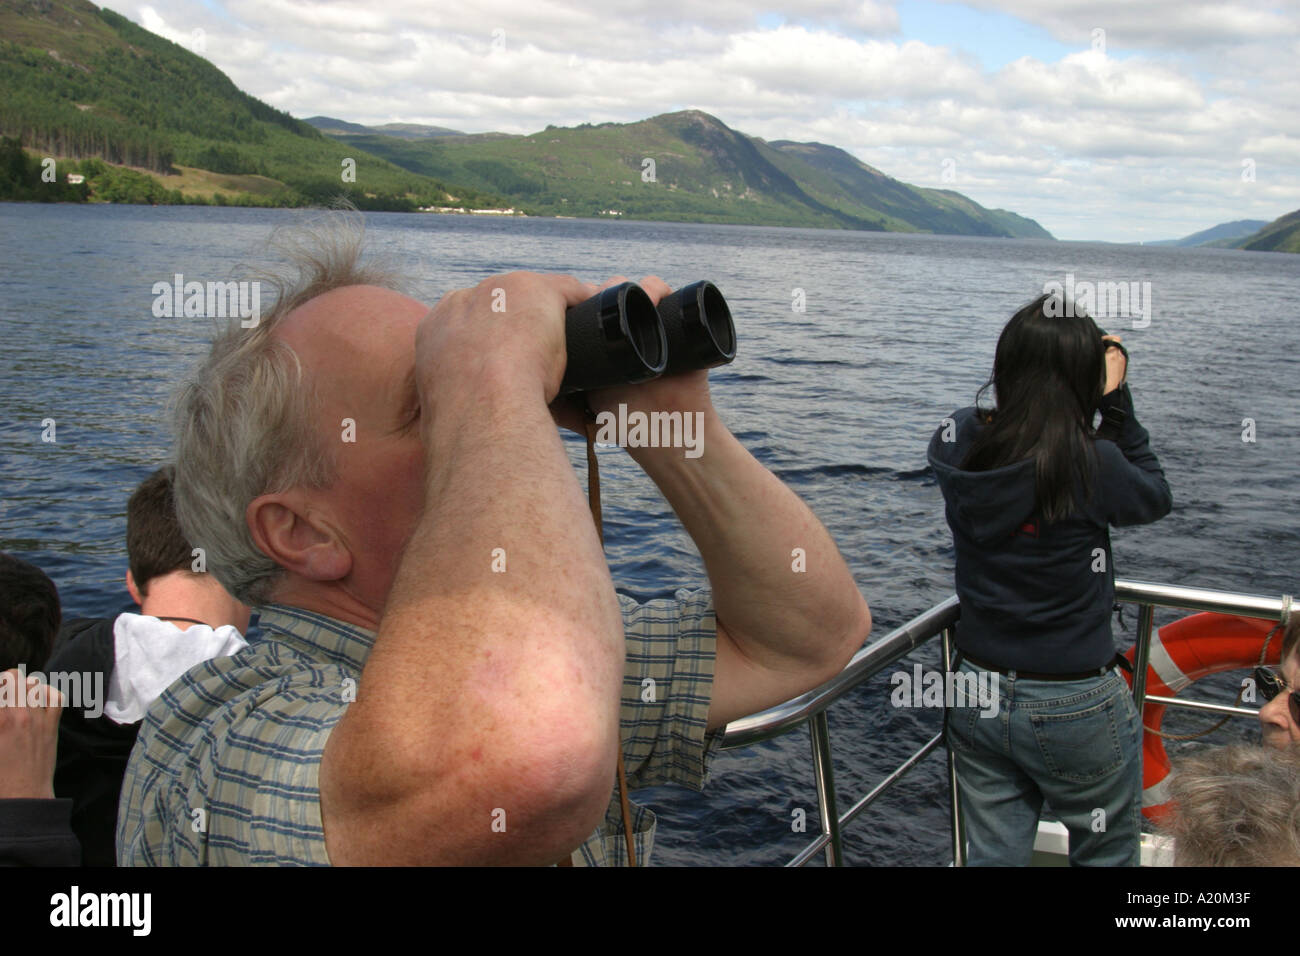 Tourists on a day trip pleasure cruiser on Loch Ness looking for Nessie the Loch Ness Monster, Scotland - Stock Image